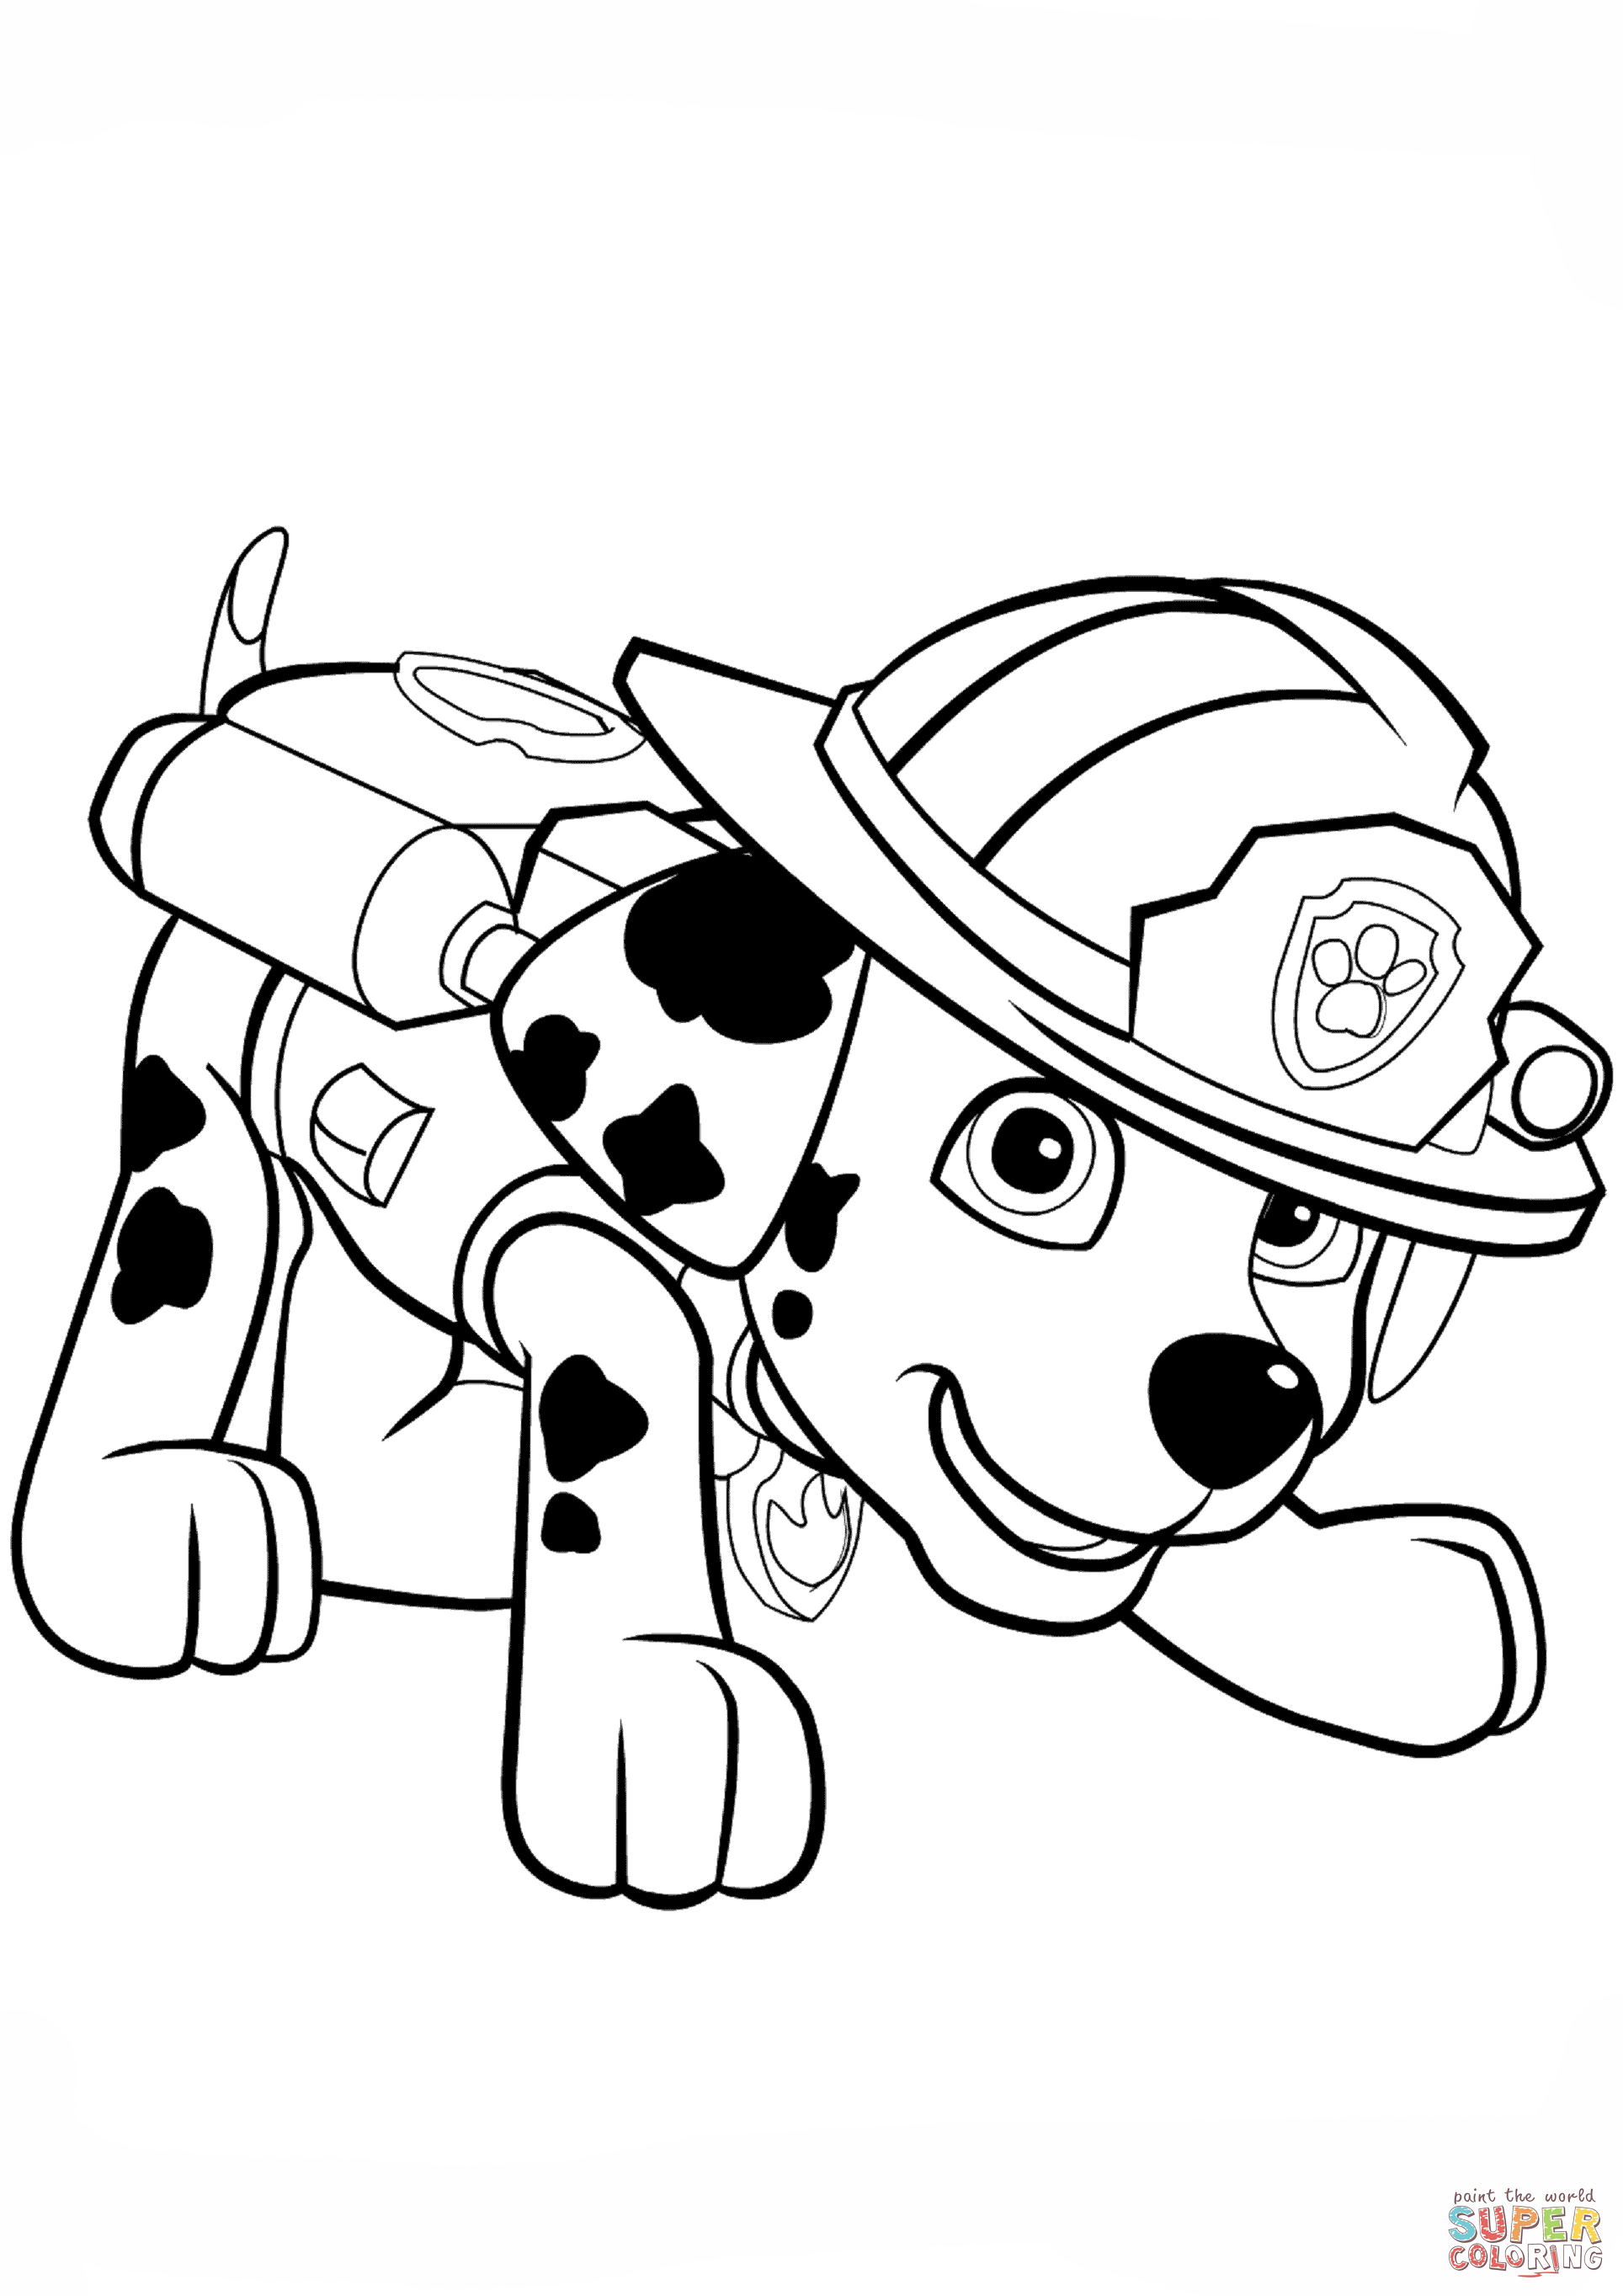 Marshall Paw Patrol Coloring Pages Printable Paw Patrol Coloring Pages Paw Patrol Coloring Puppy Coloring Pages